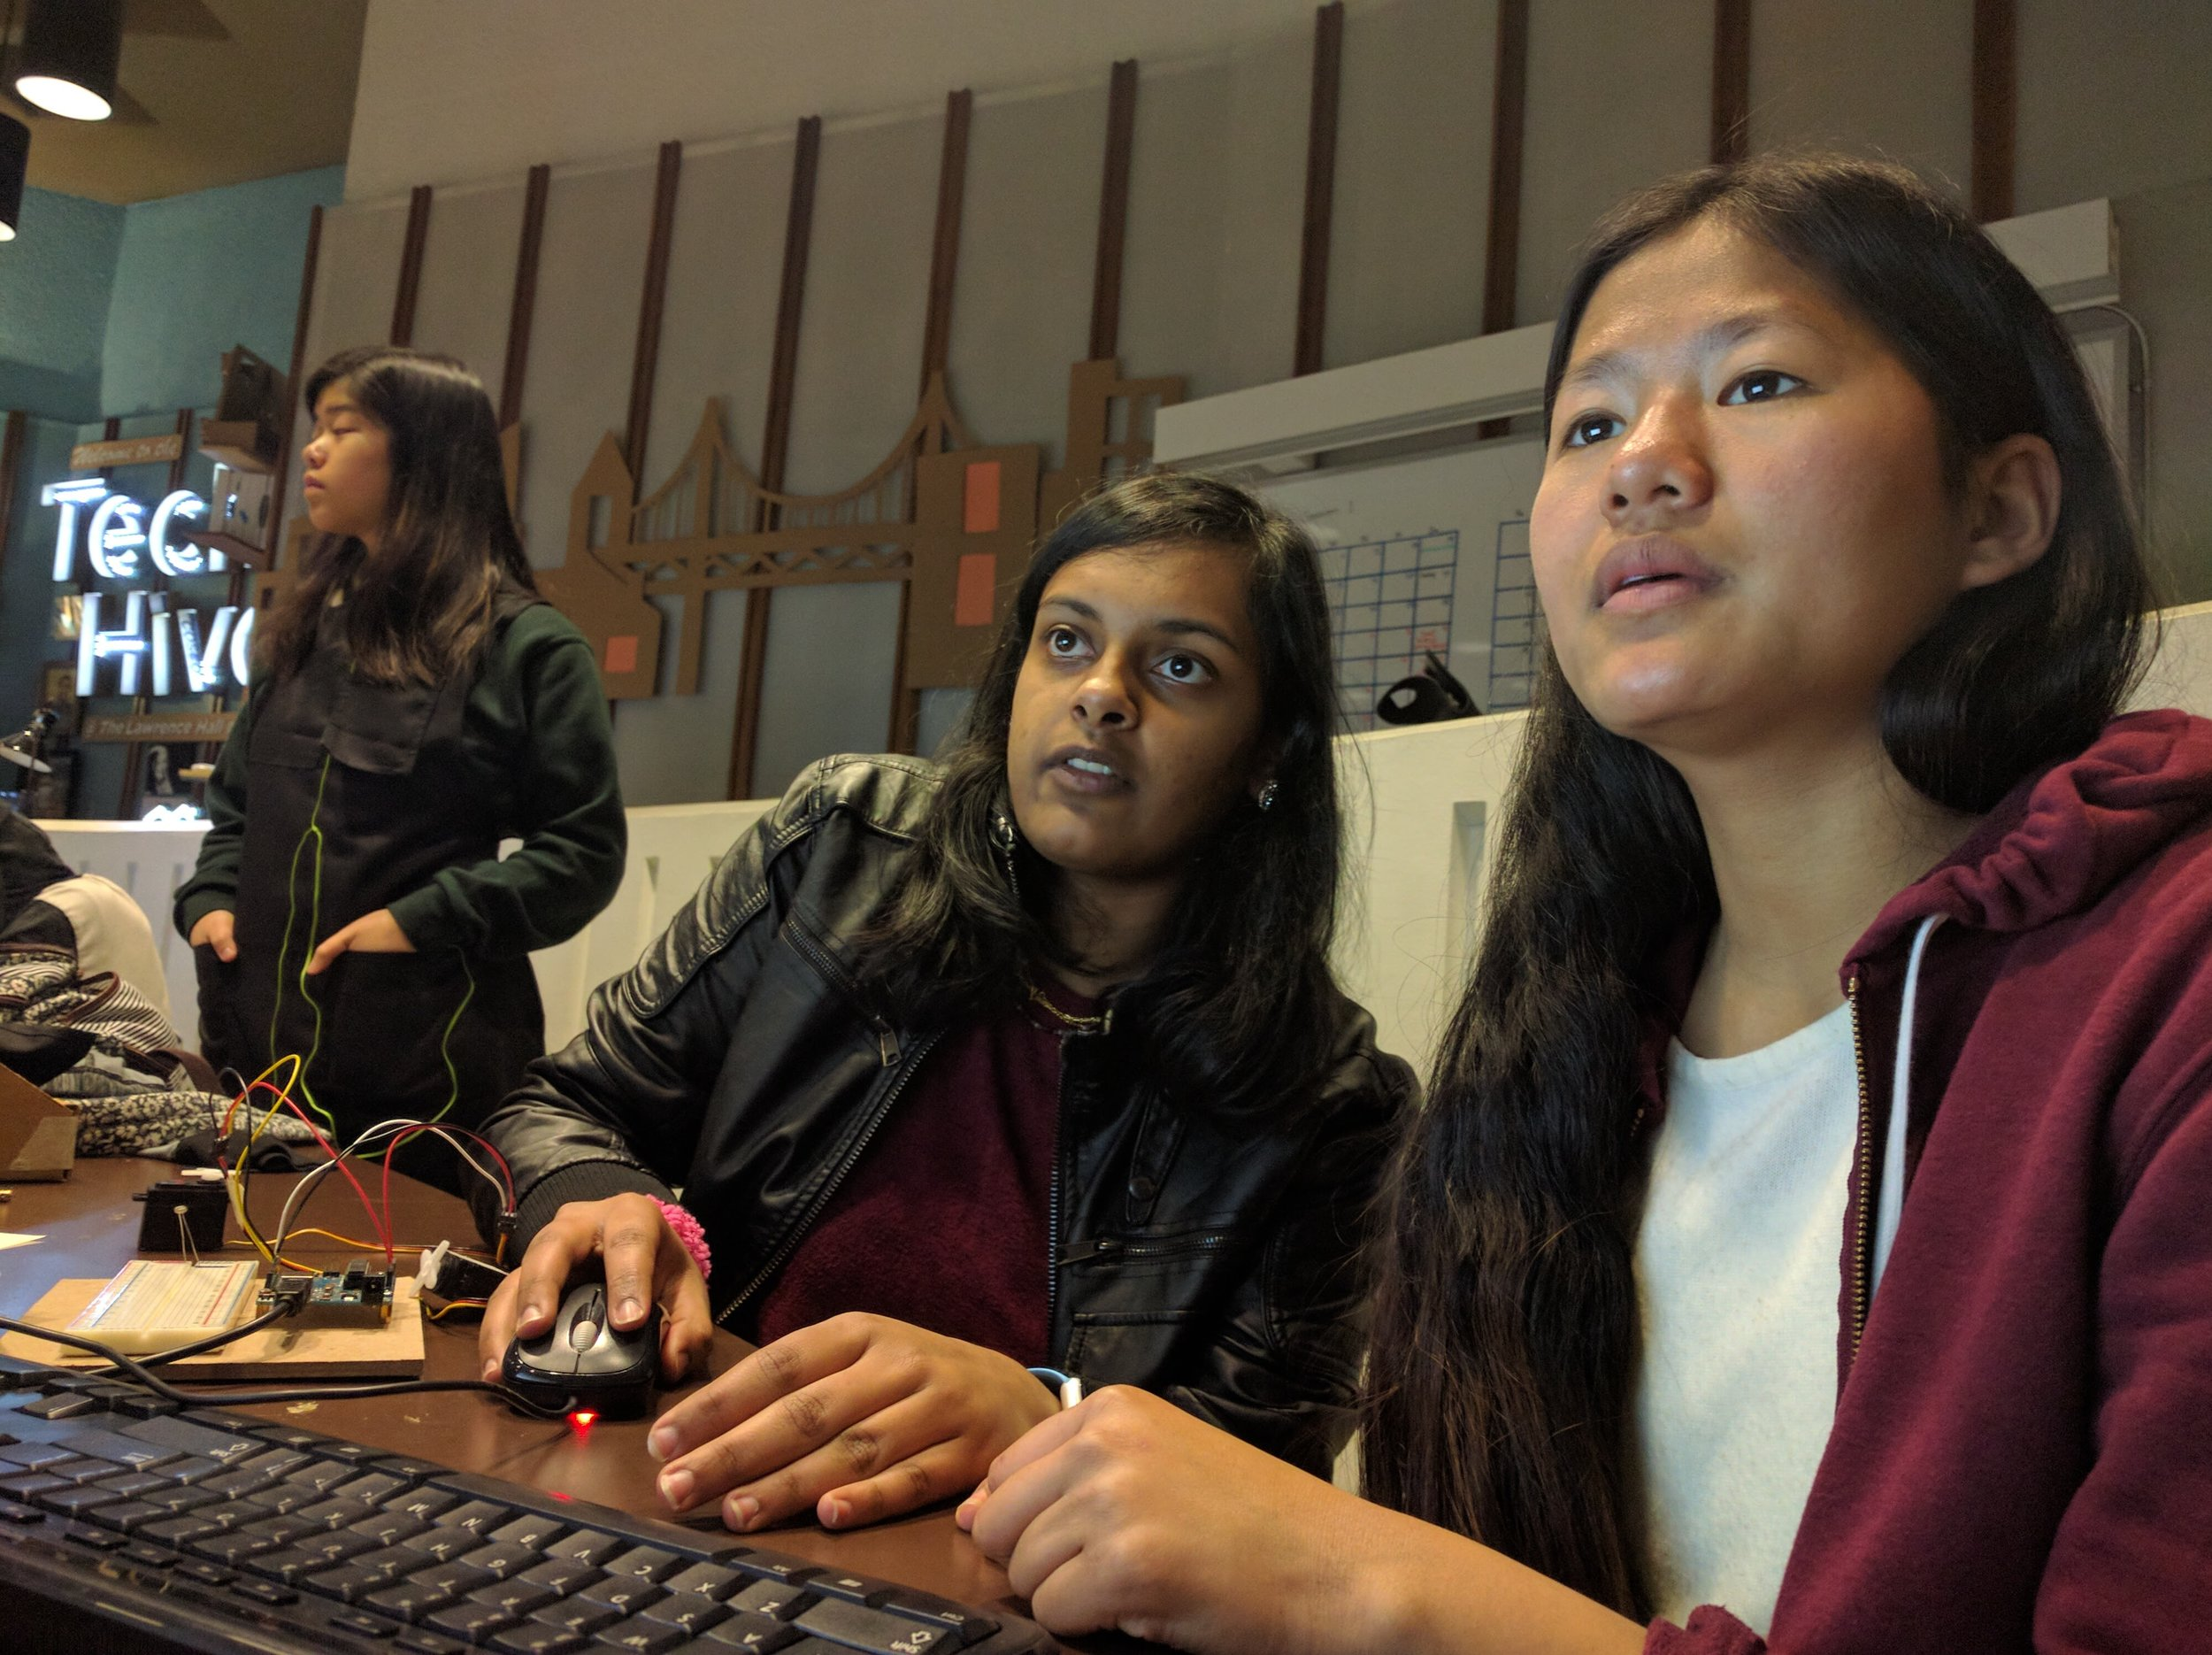 Neesha and Radhika coding away!